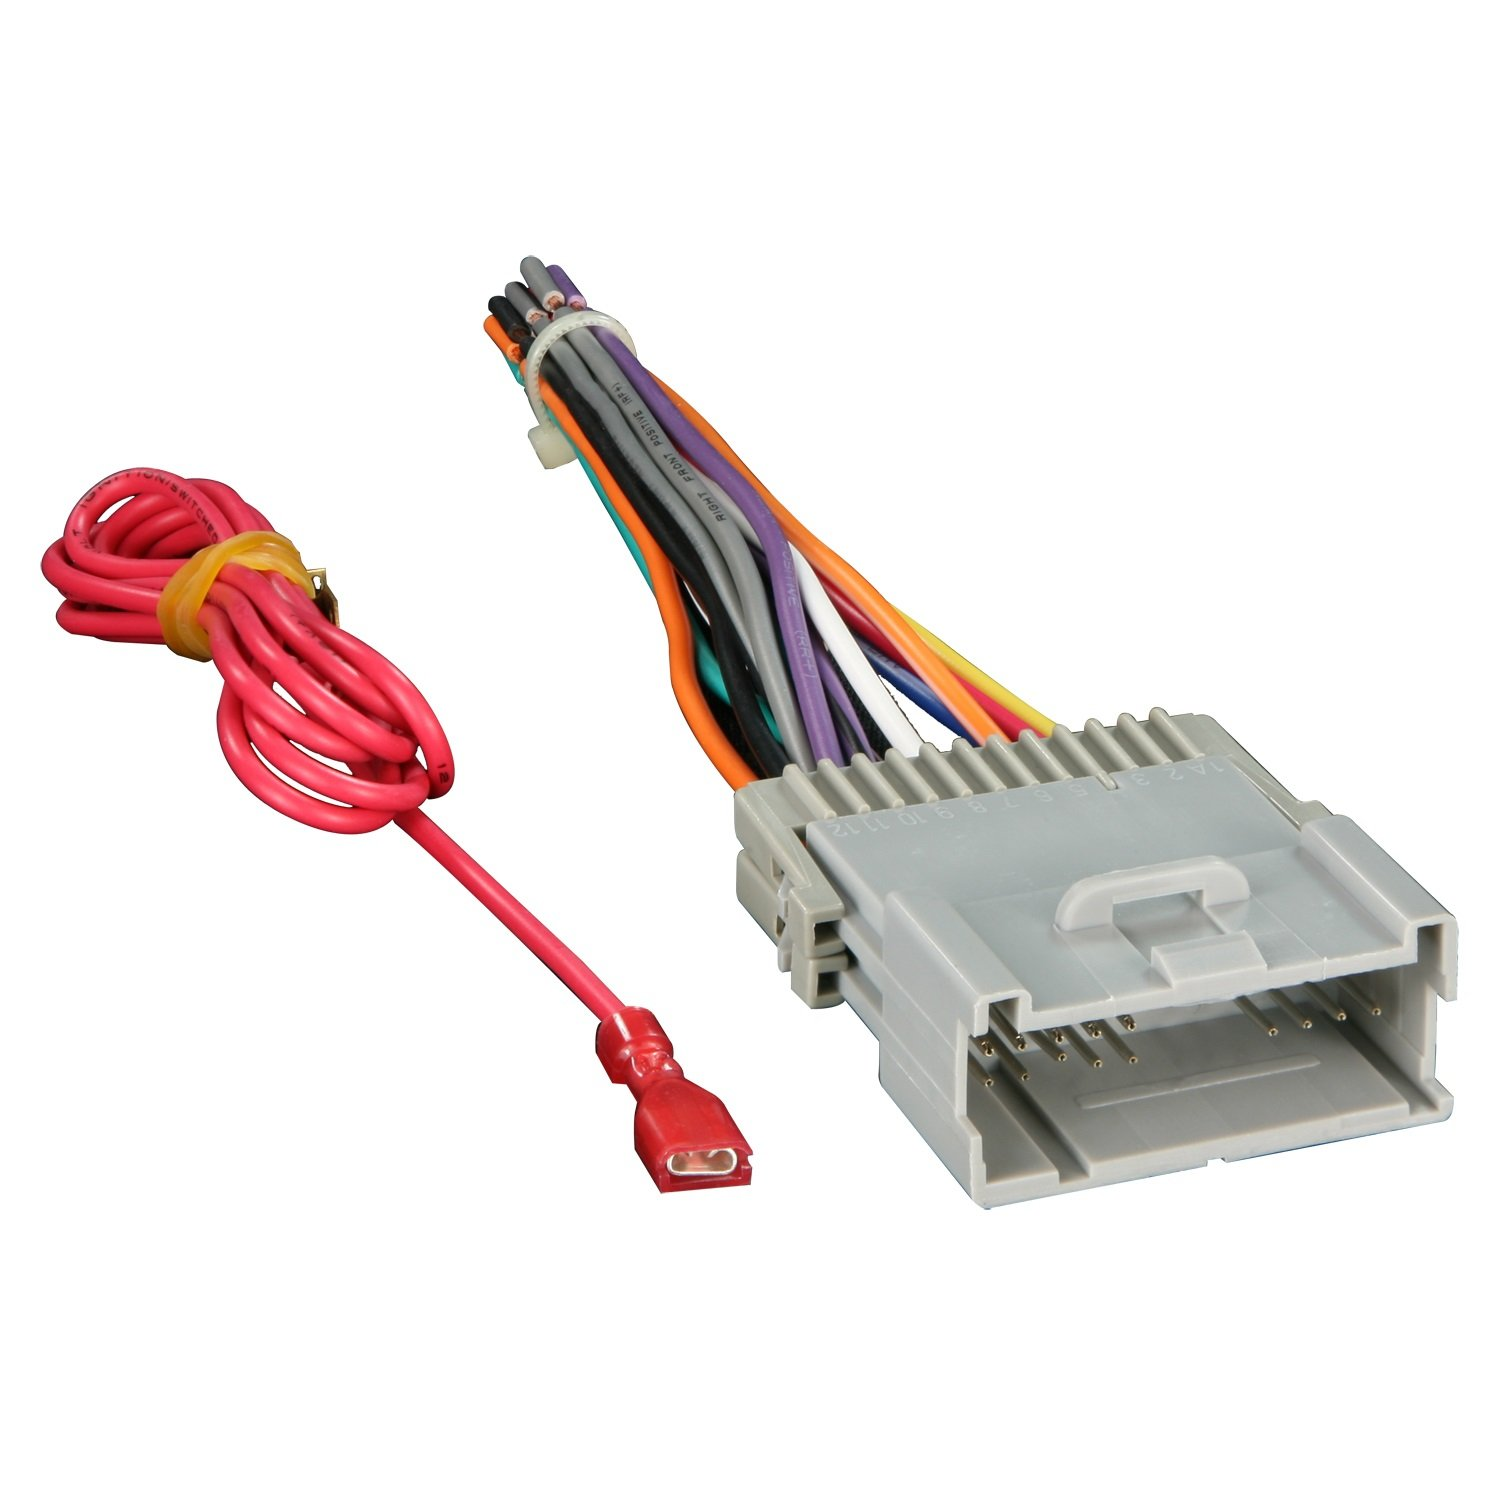 61eewxp9orL._SL1500_ amazon com metra 70 2003 radio wiring harness for gm 98 08 Honduras Auto Mobile Wire Harness at cos-gaming.co